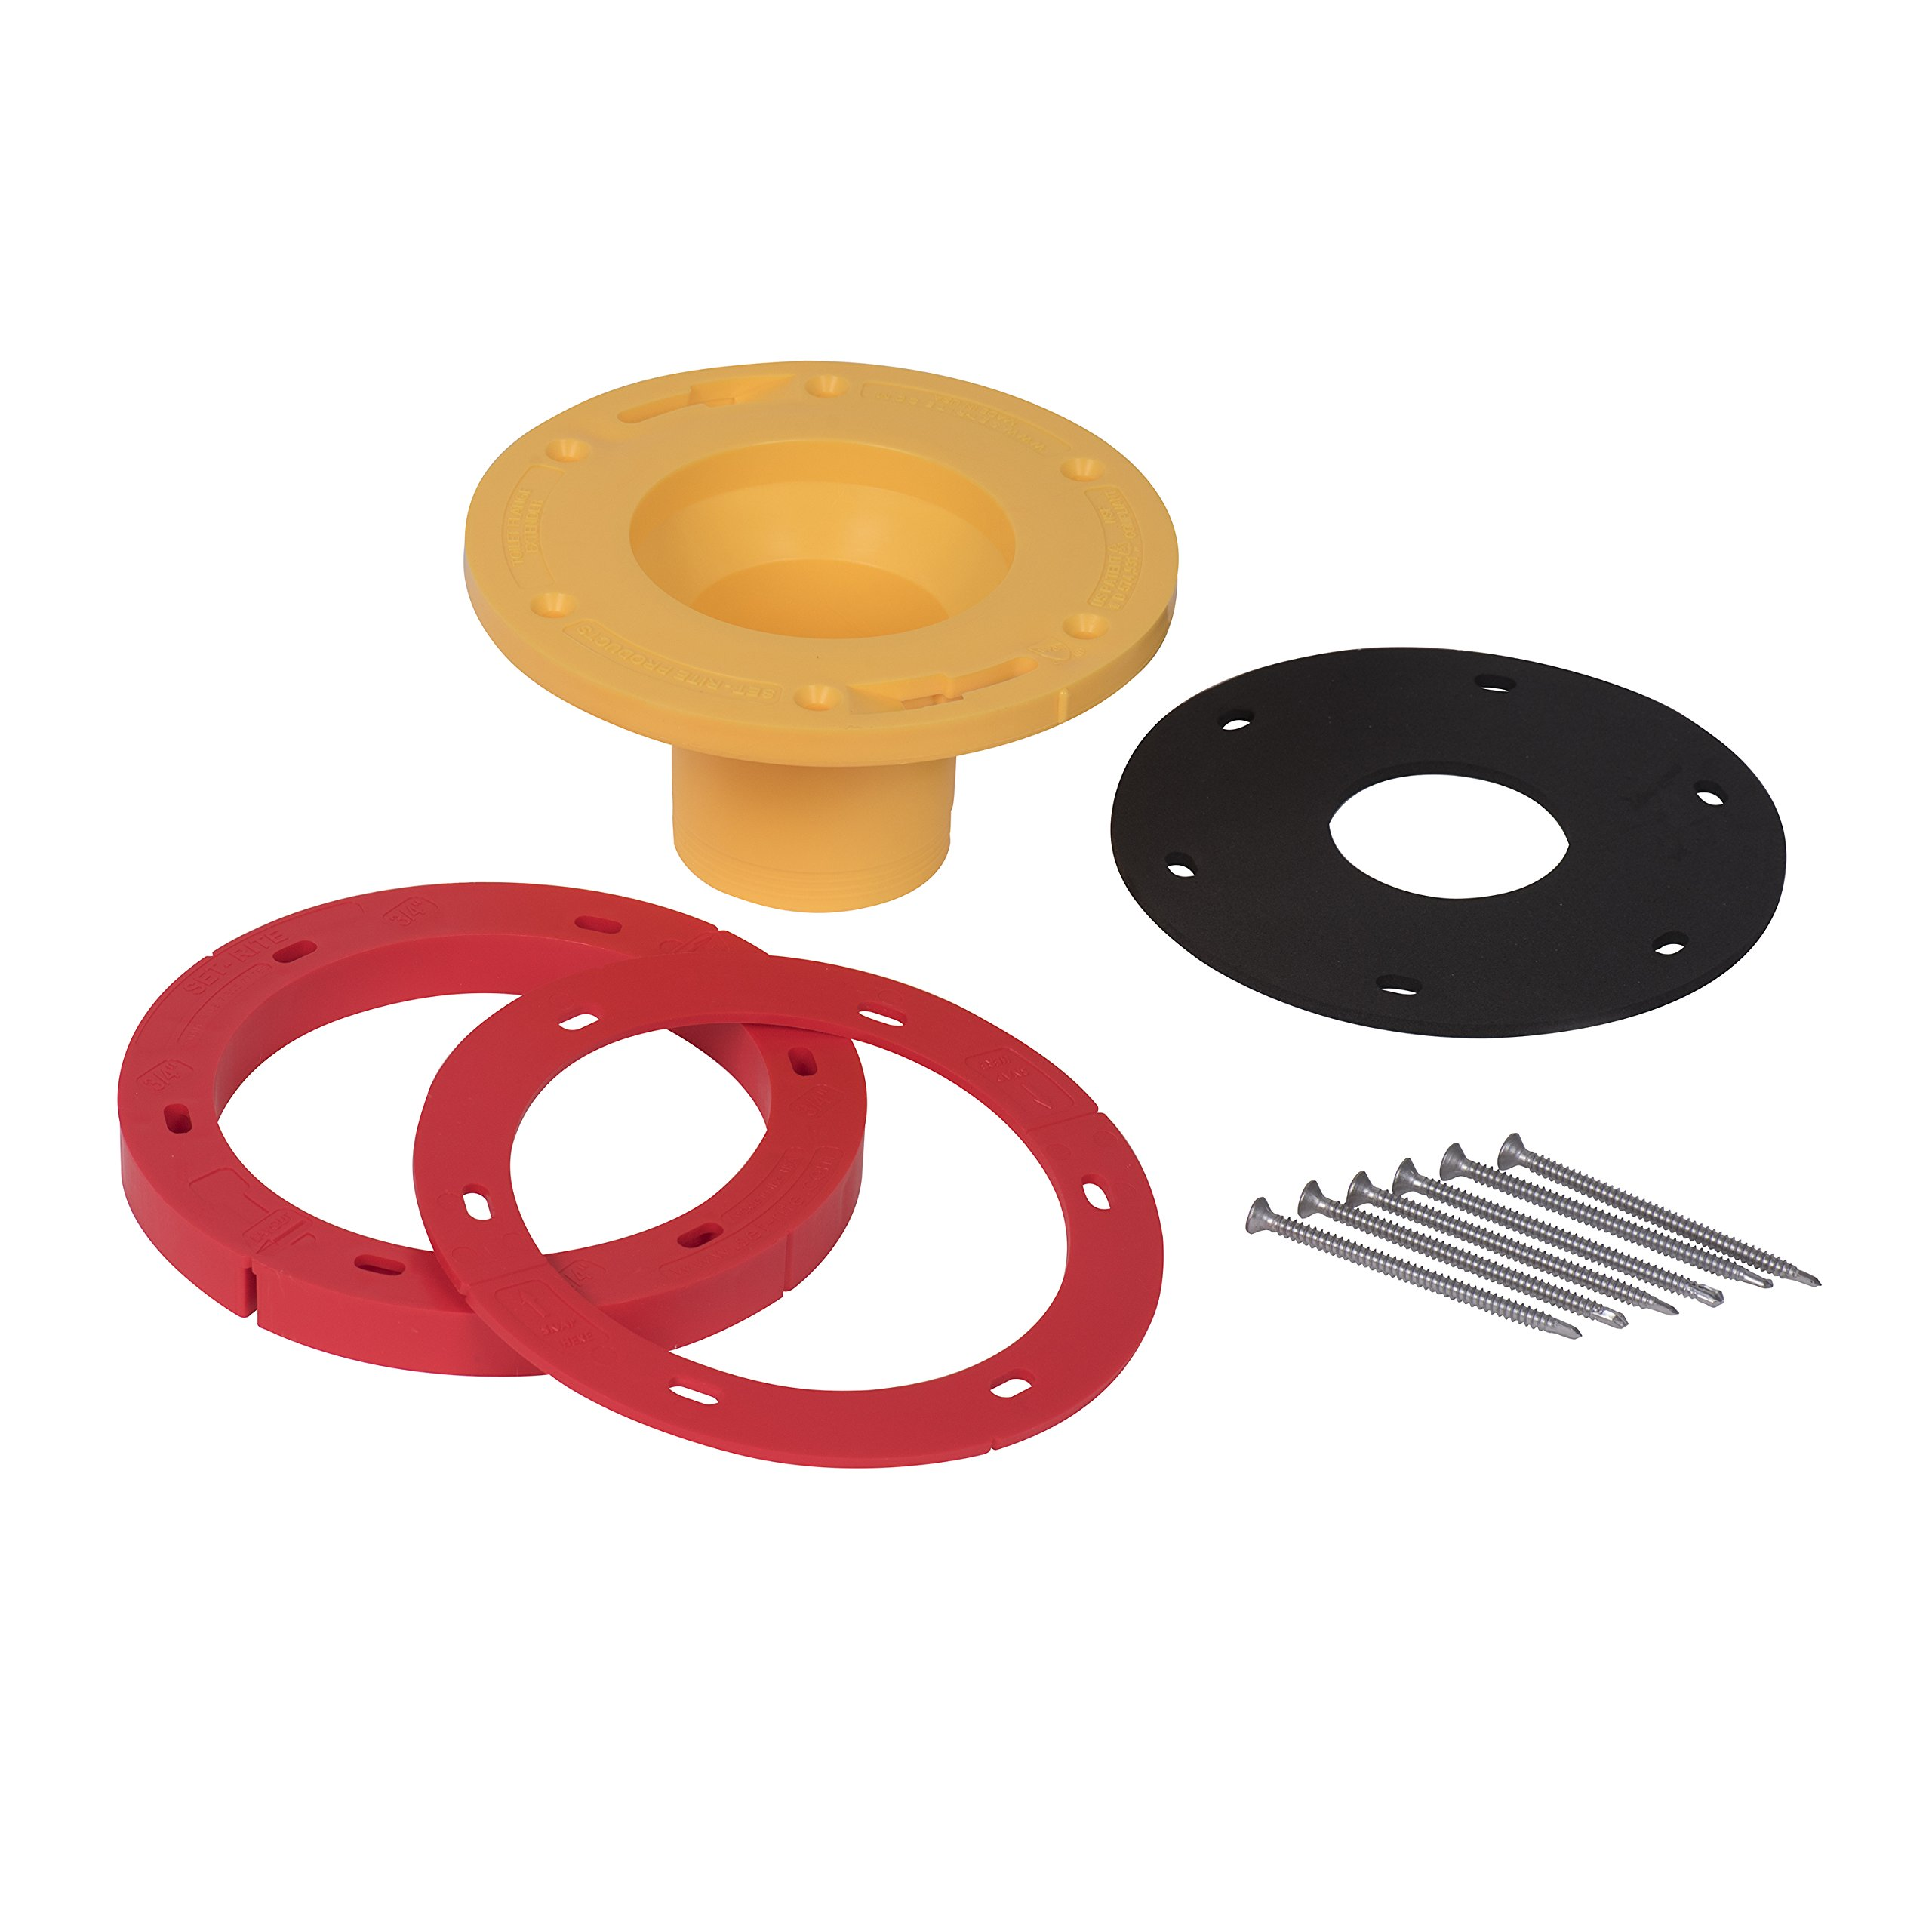 OATEY Set-Rite Toilet Flange Extension Kit